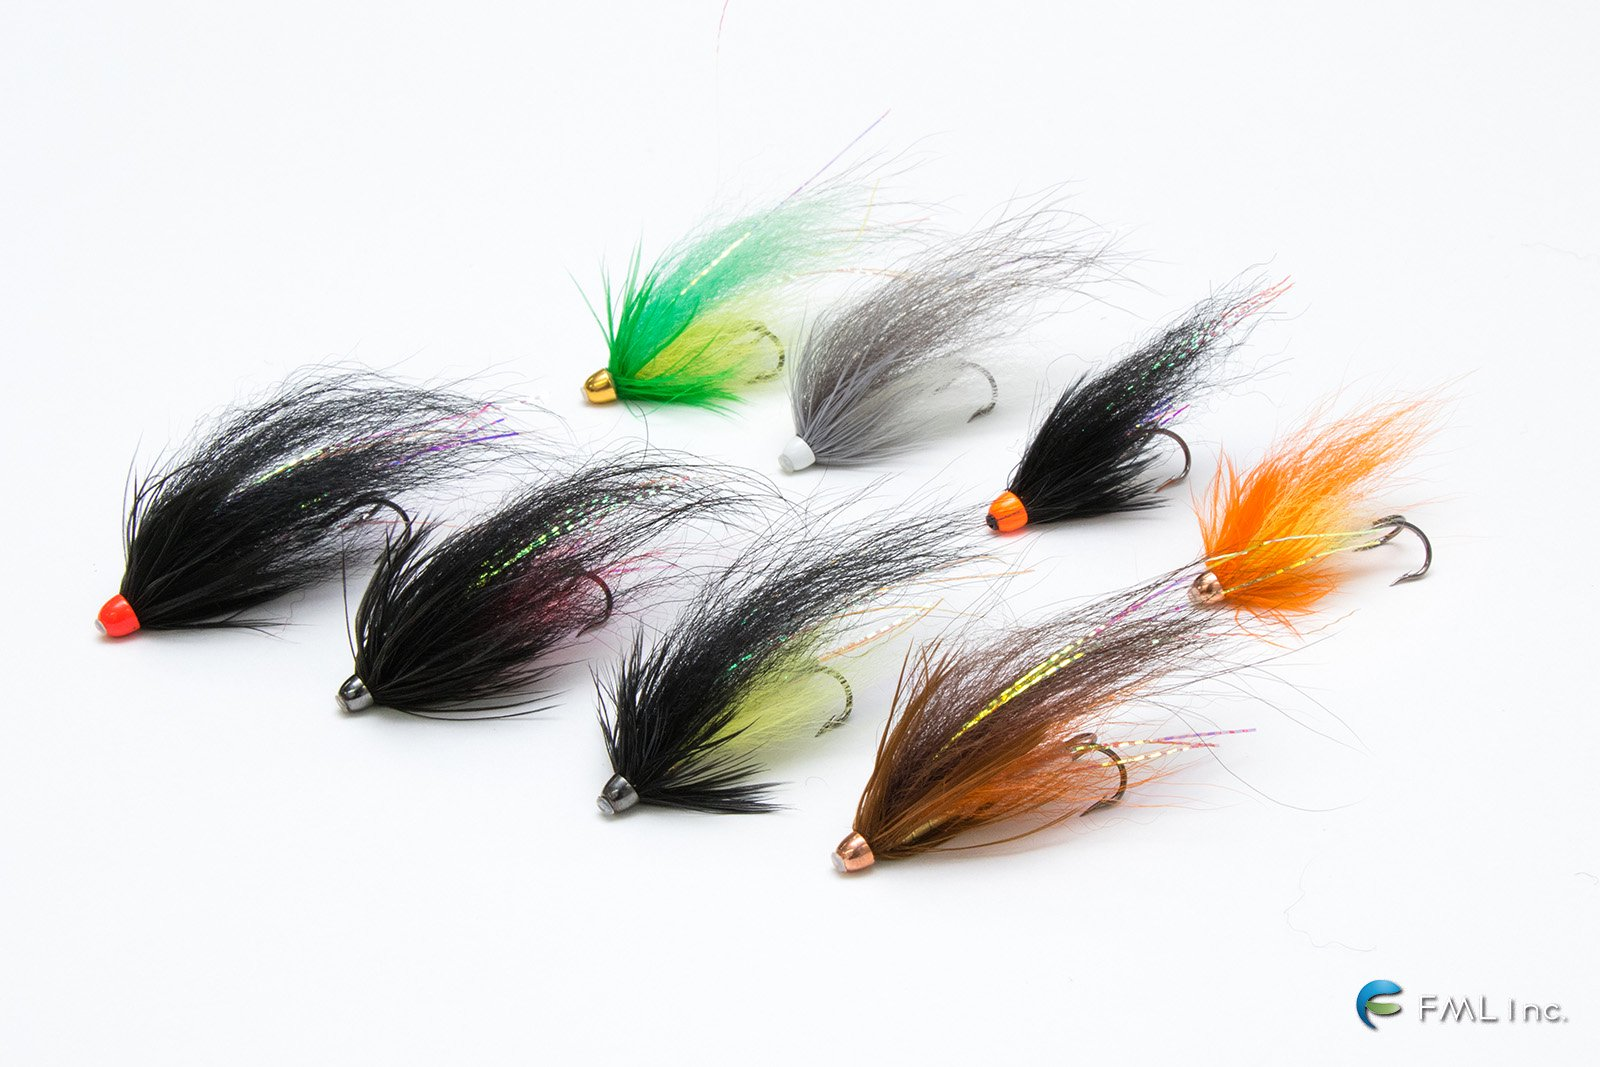 <img class='new_mark_img1' src='//img.shop-pro.jp/img/new/icons5.gif' style='border:none;display:inline;margin:0px;padding:0px;width:auto;' />Eumer Tube Fly TROUT / SALMON